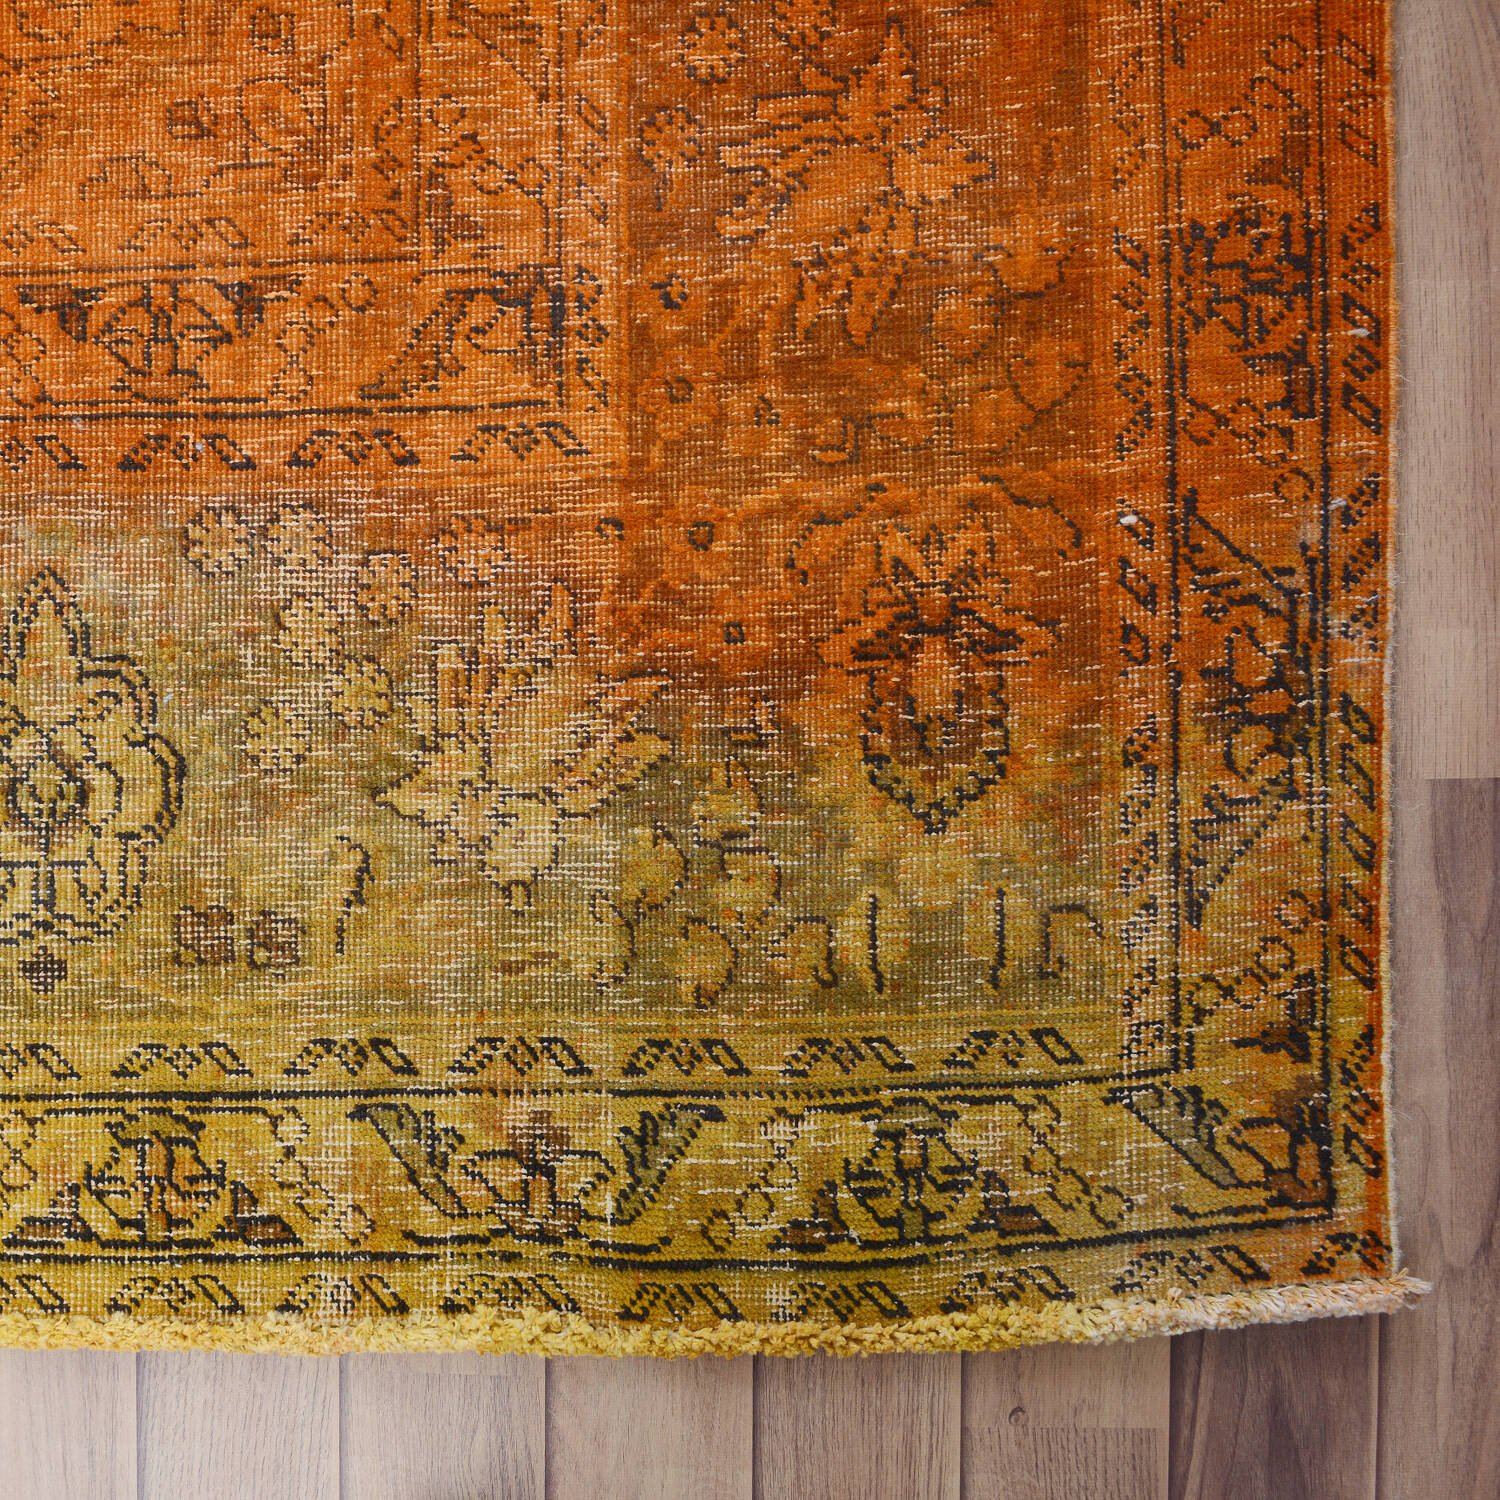 Antique Over Dyed Floral Tabriz Persian Area Rug 10x13 image 5